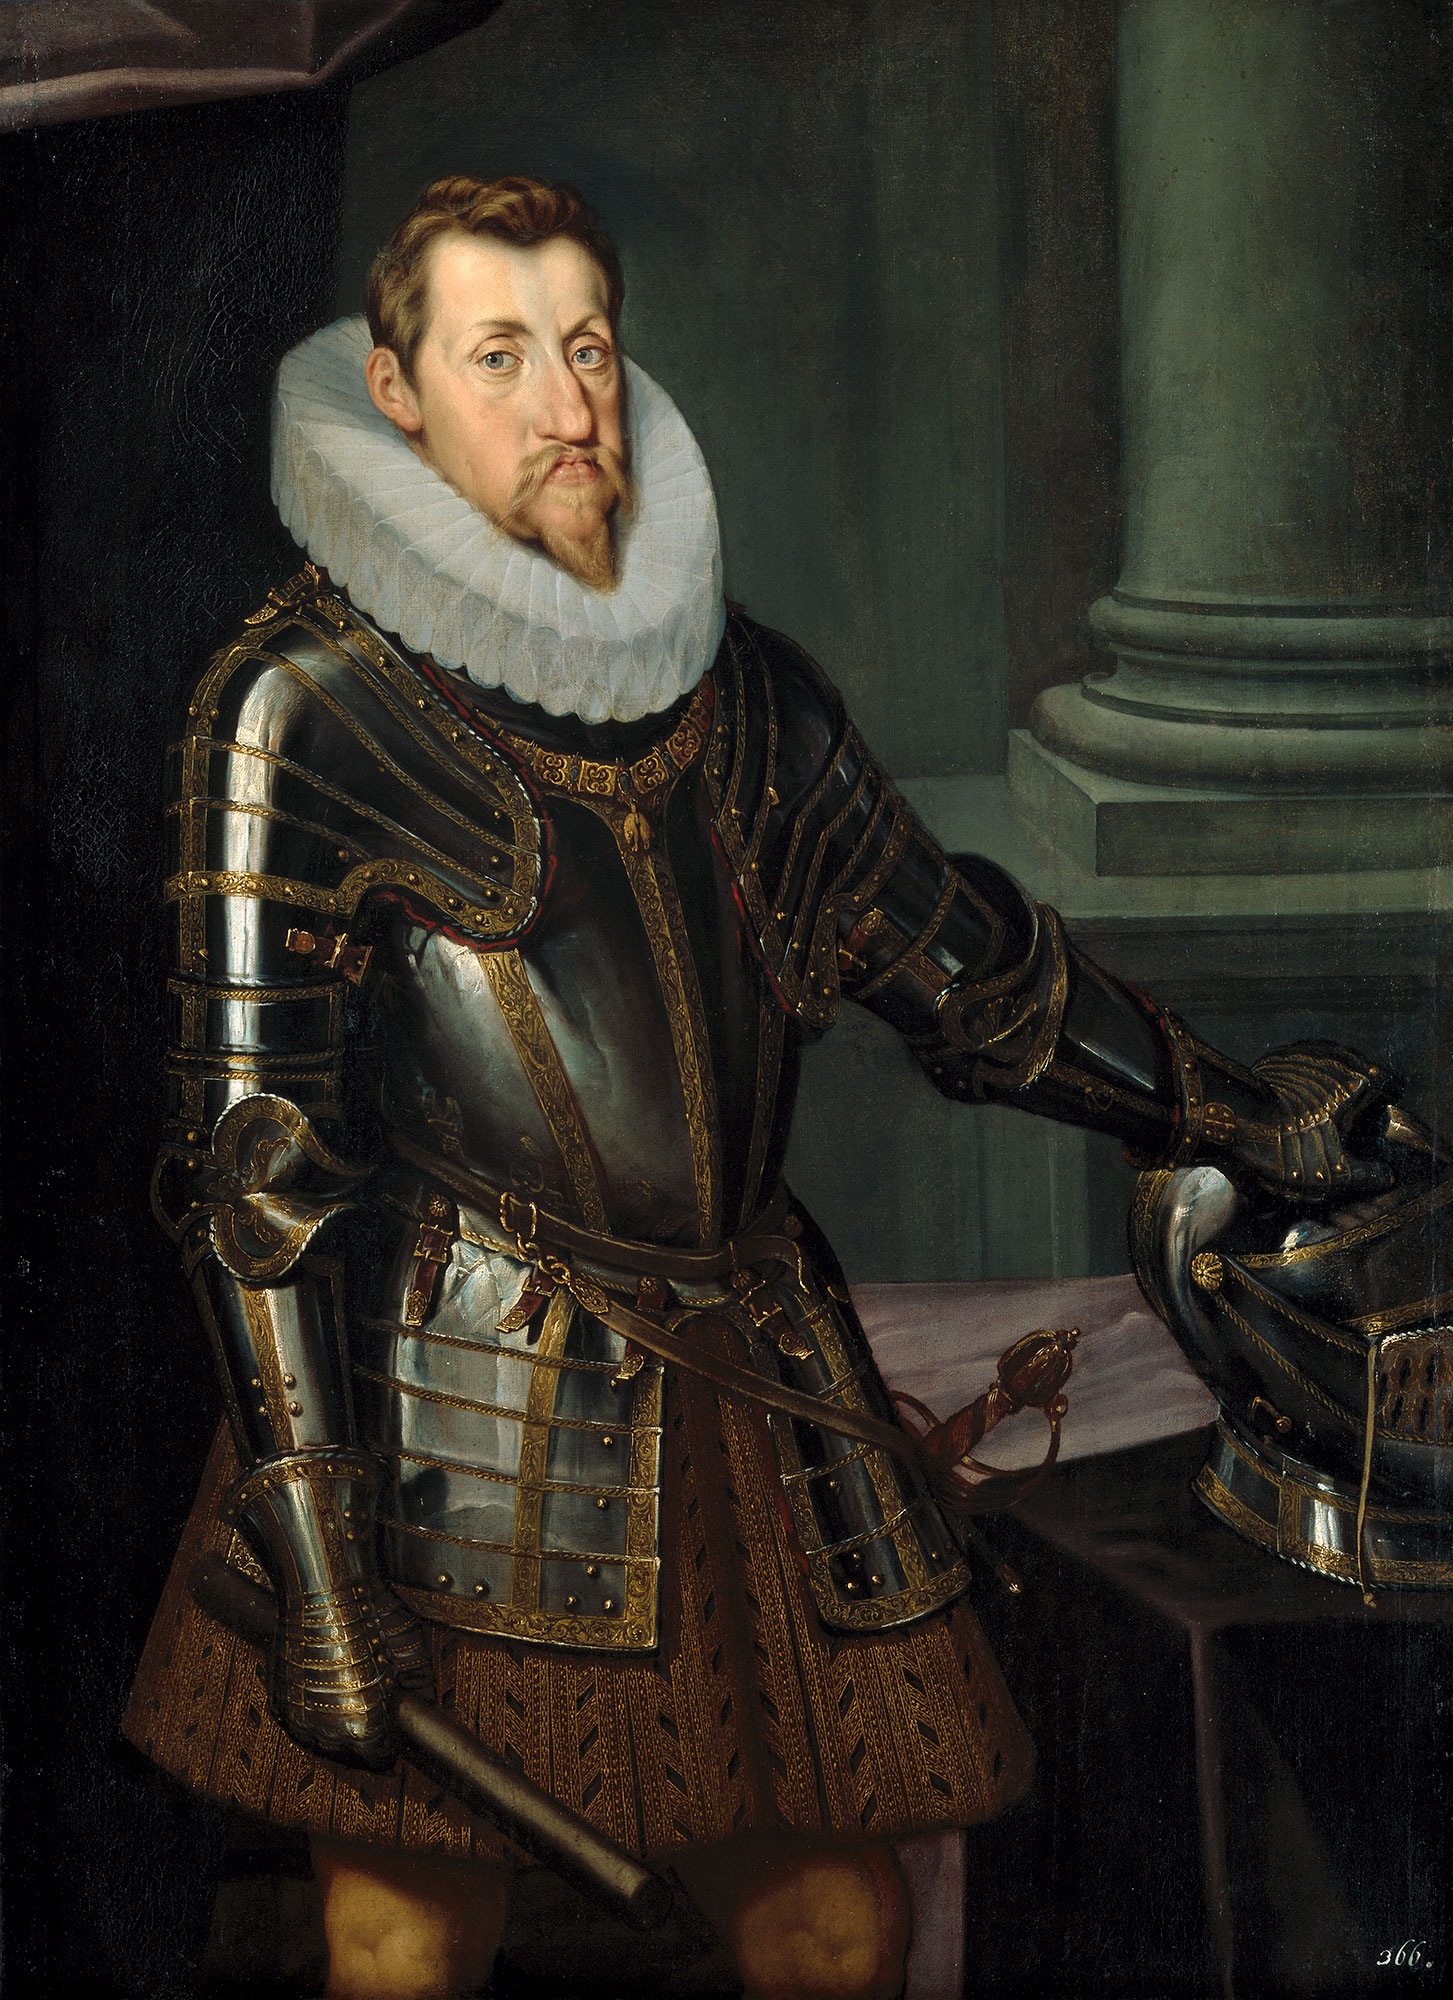 Painting of Ferdiand II wearing a suit of armor